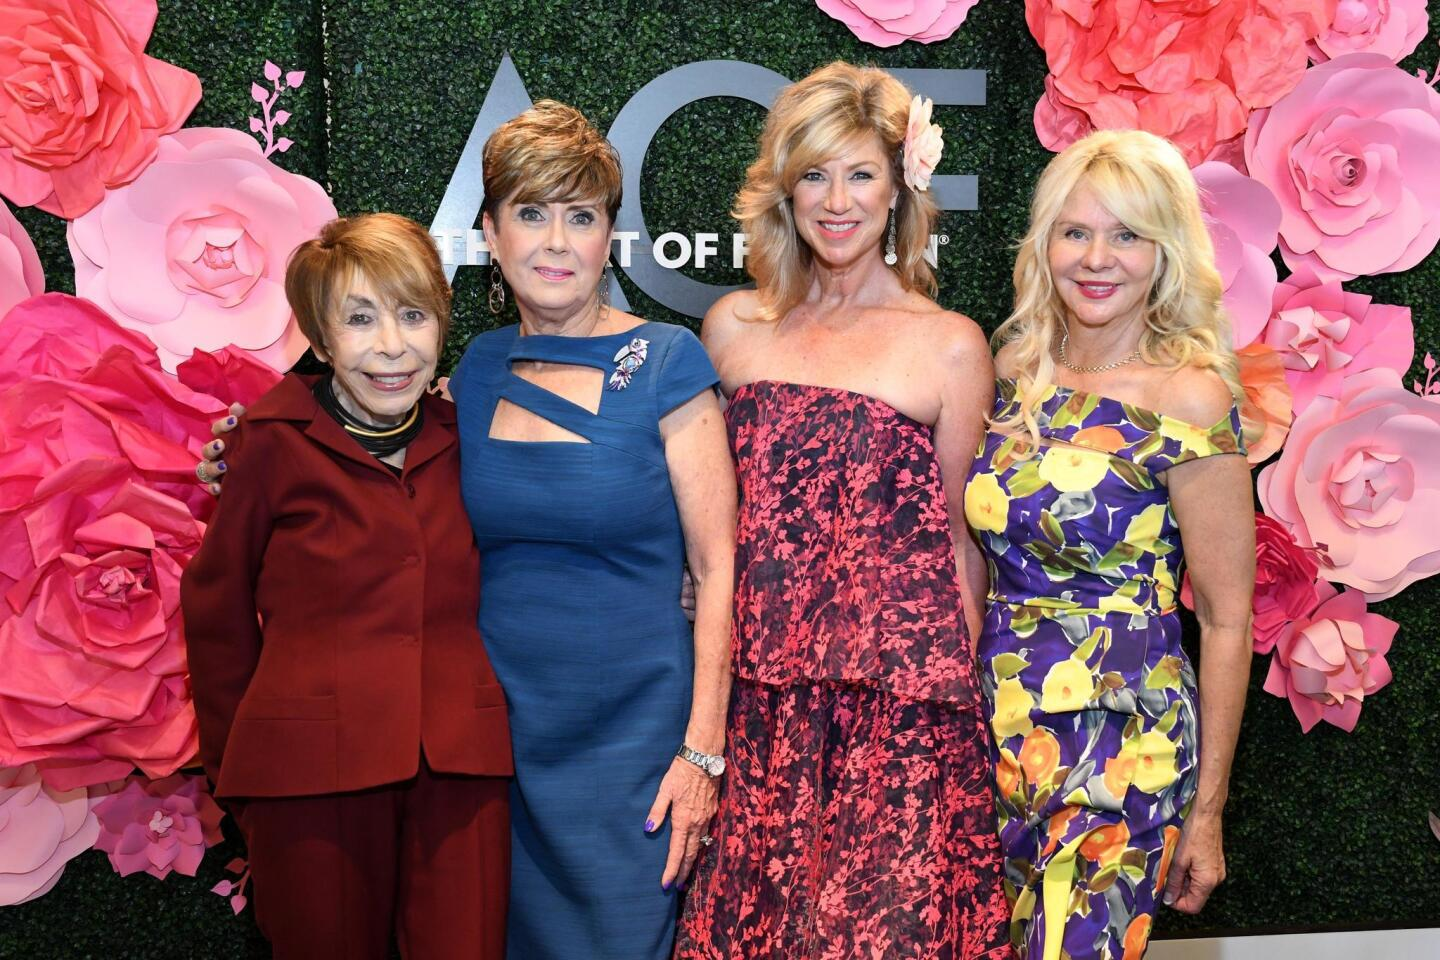 Balboa Park's Patrons of the Prado showcases gowns for a cause in San Diego